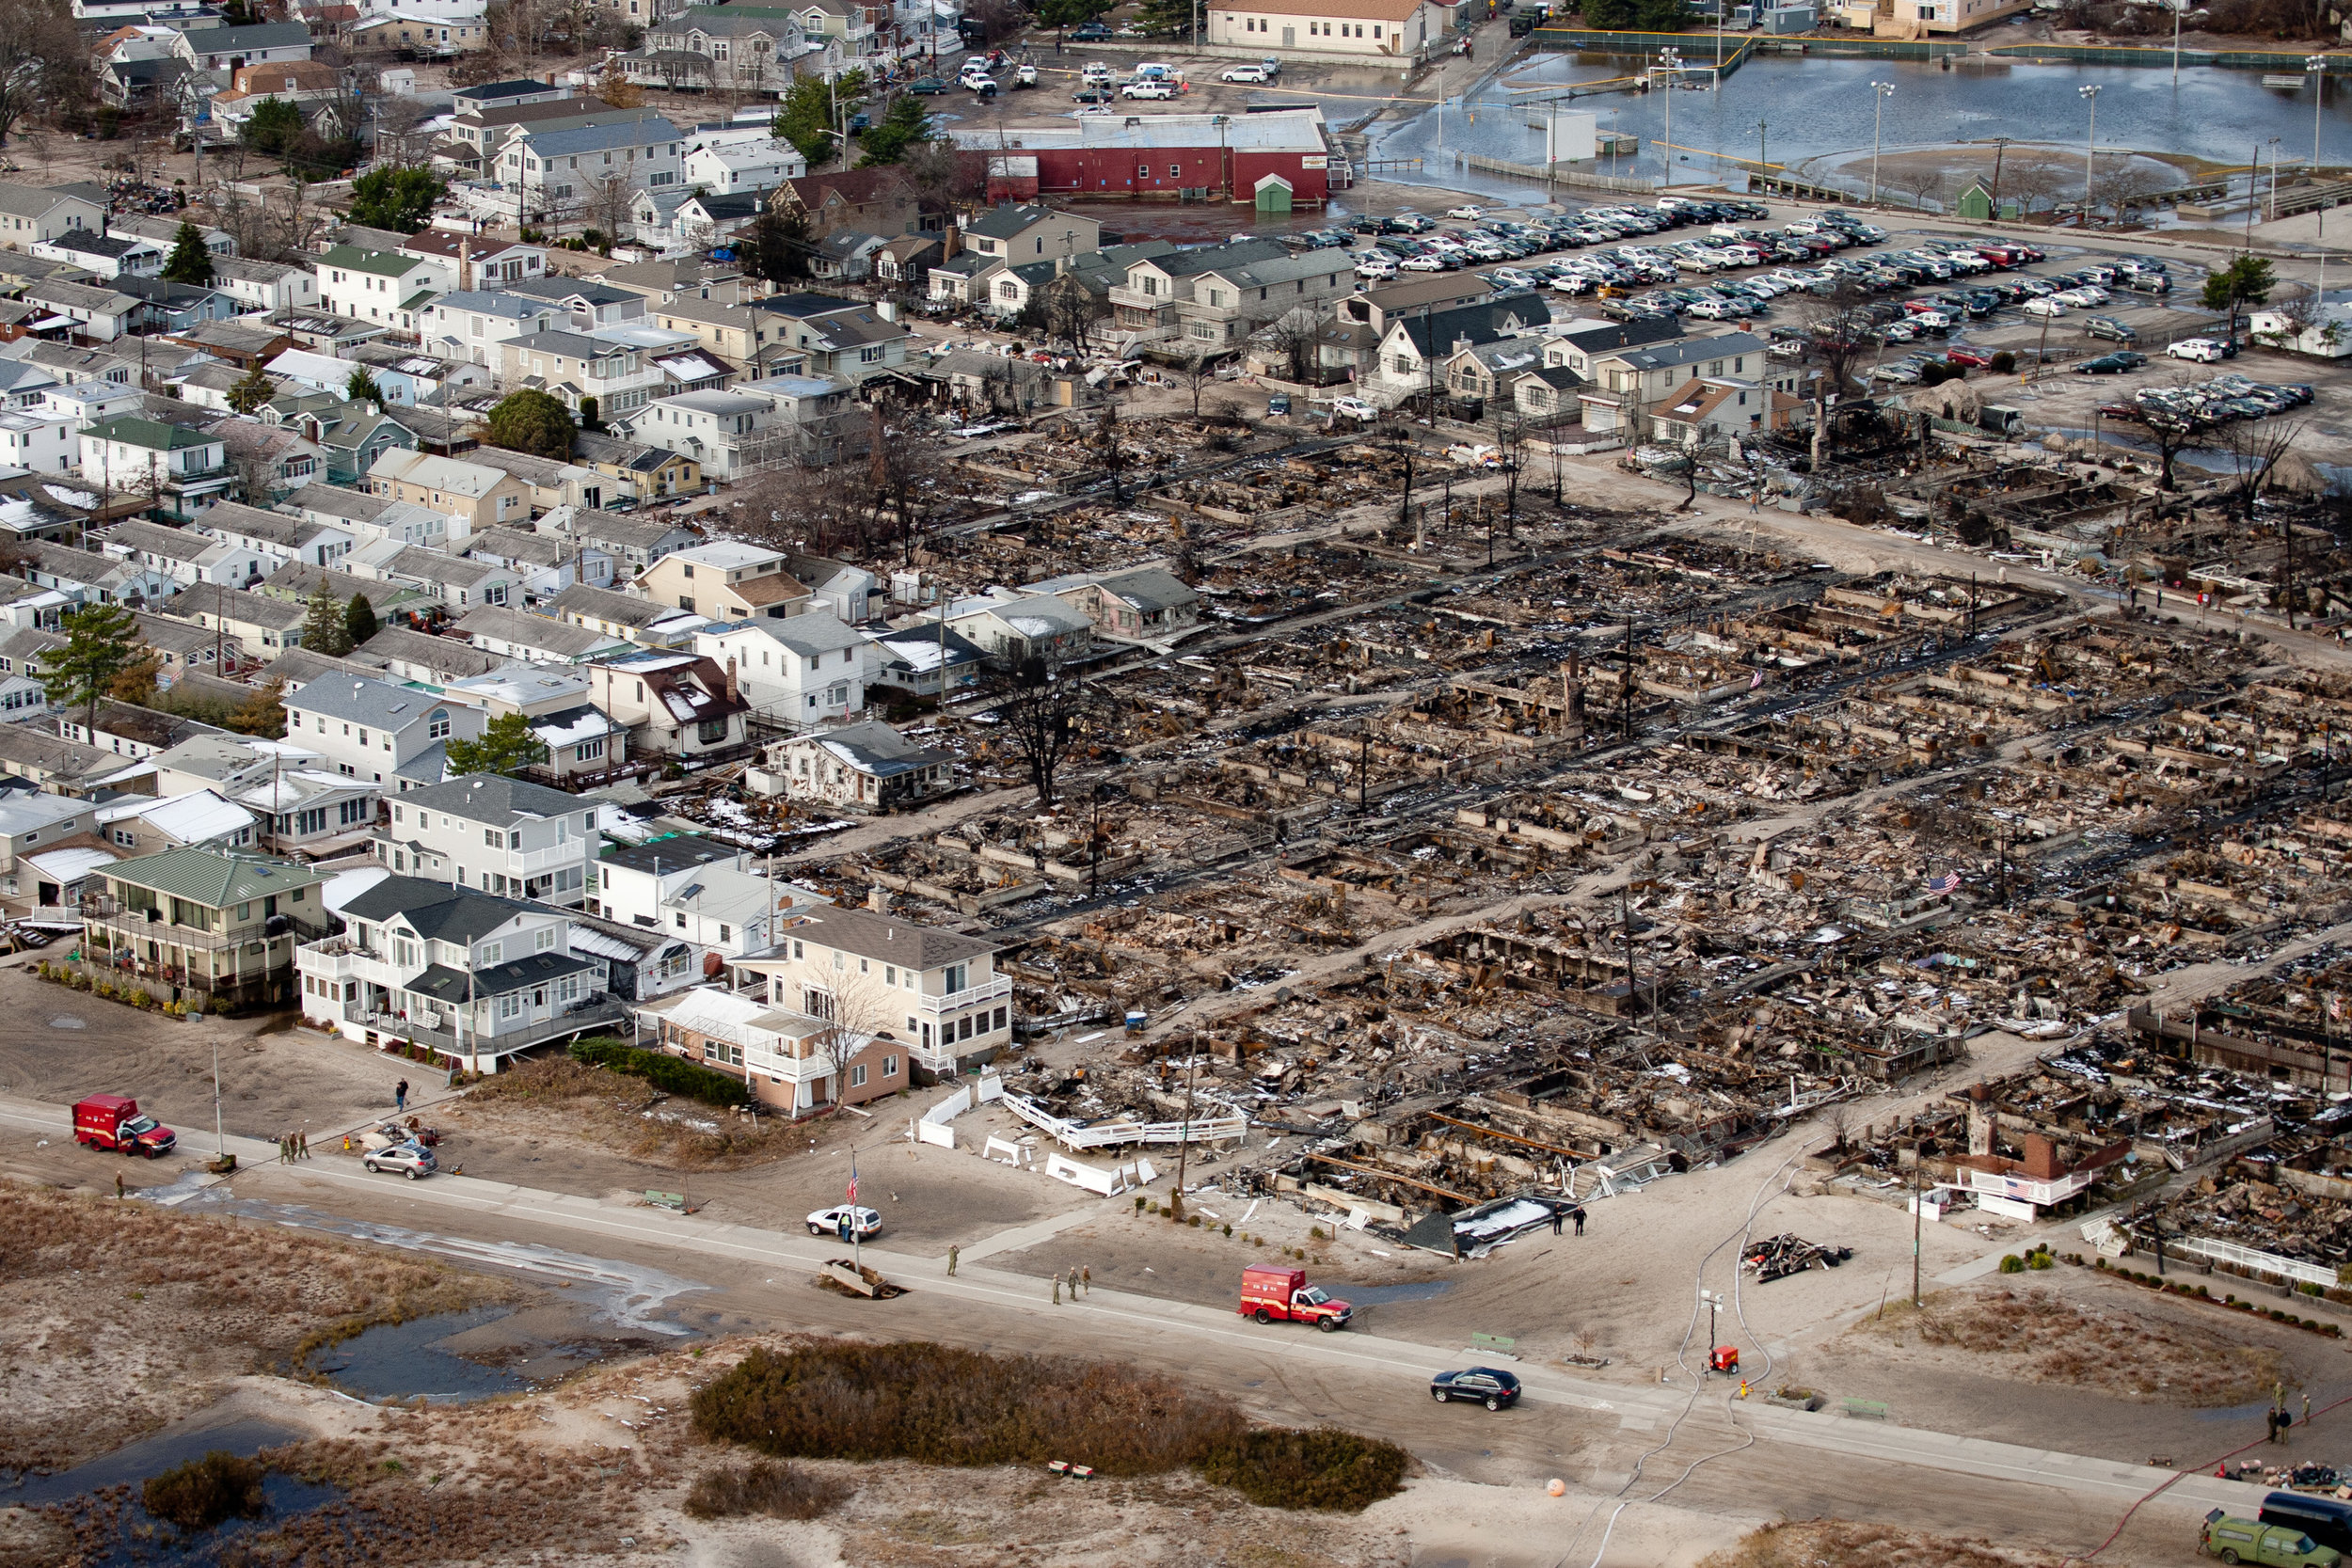 Flooding in Breezy Point caused by Hurricane Sandy. Photo courtesy of FEMA.